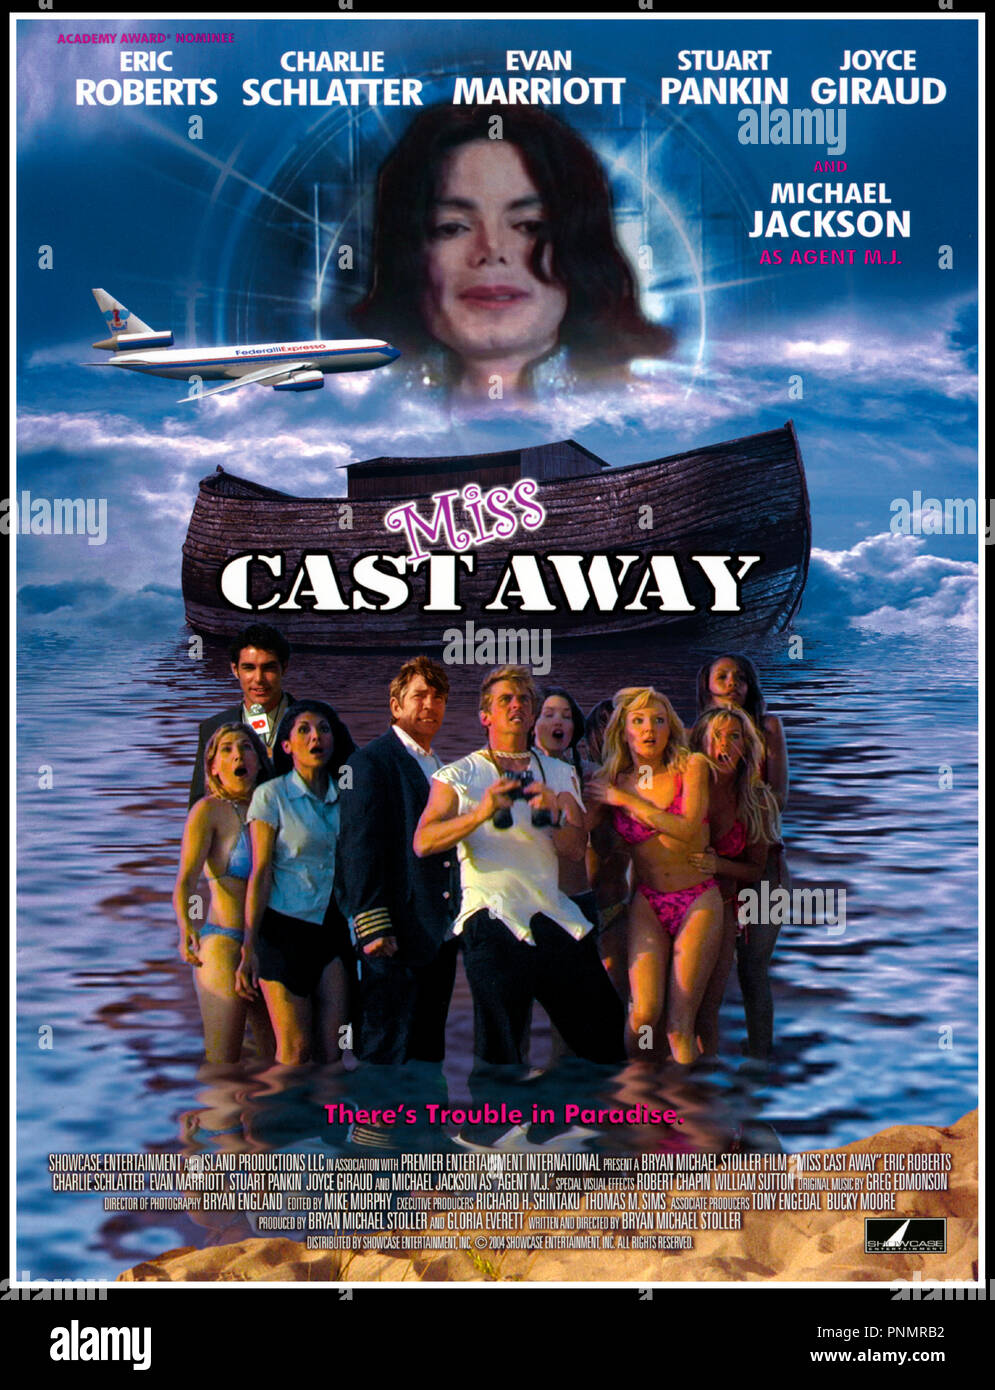 cast away full movie free download in english